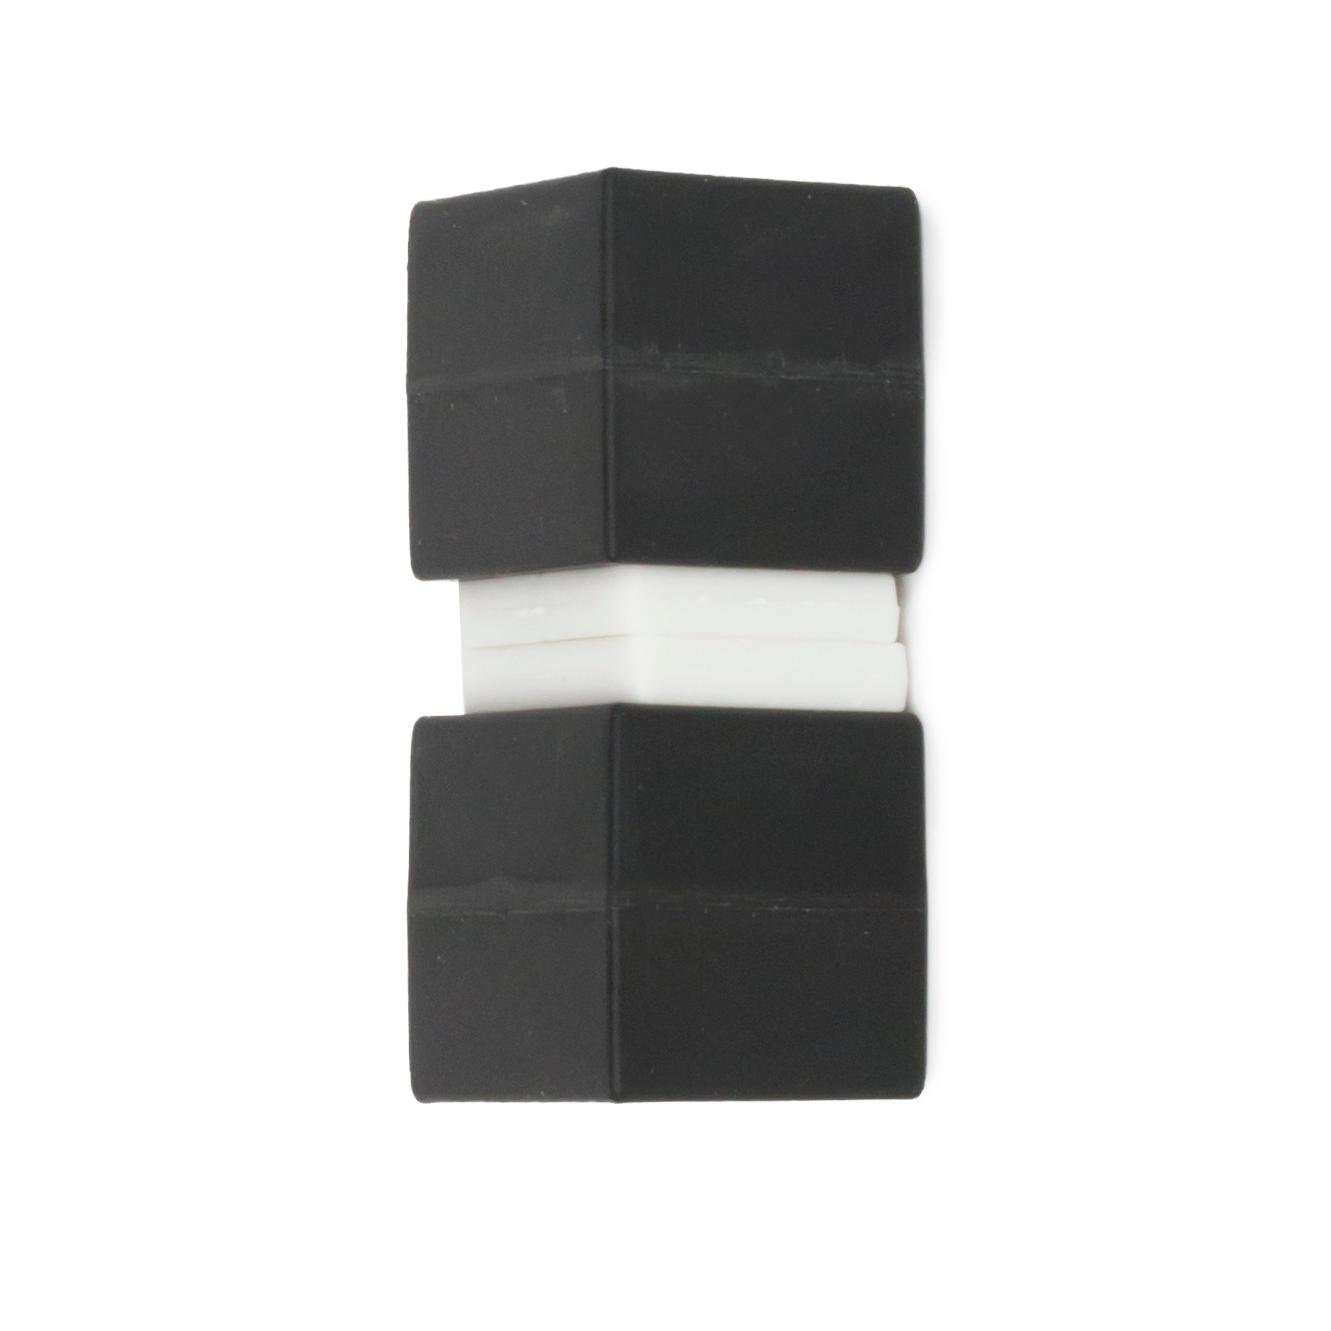 Unbreakable Plastic-Coated N52 Neodymium Cube Magnets, Waterproof, 1 x 1 x 1 inch. 2-Pack. Revitalizaire Strong Permanent NdFeB Rare Earth Magnets Coated with Hard Black Polypropylene by Revitalizaire (Image #6)